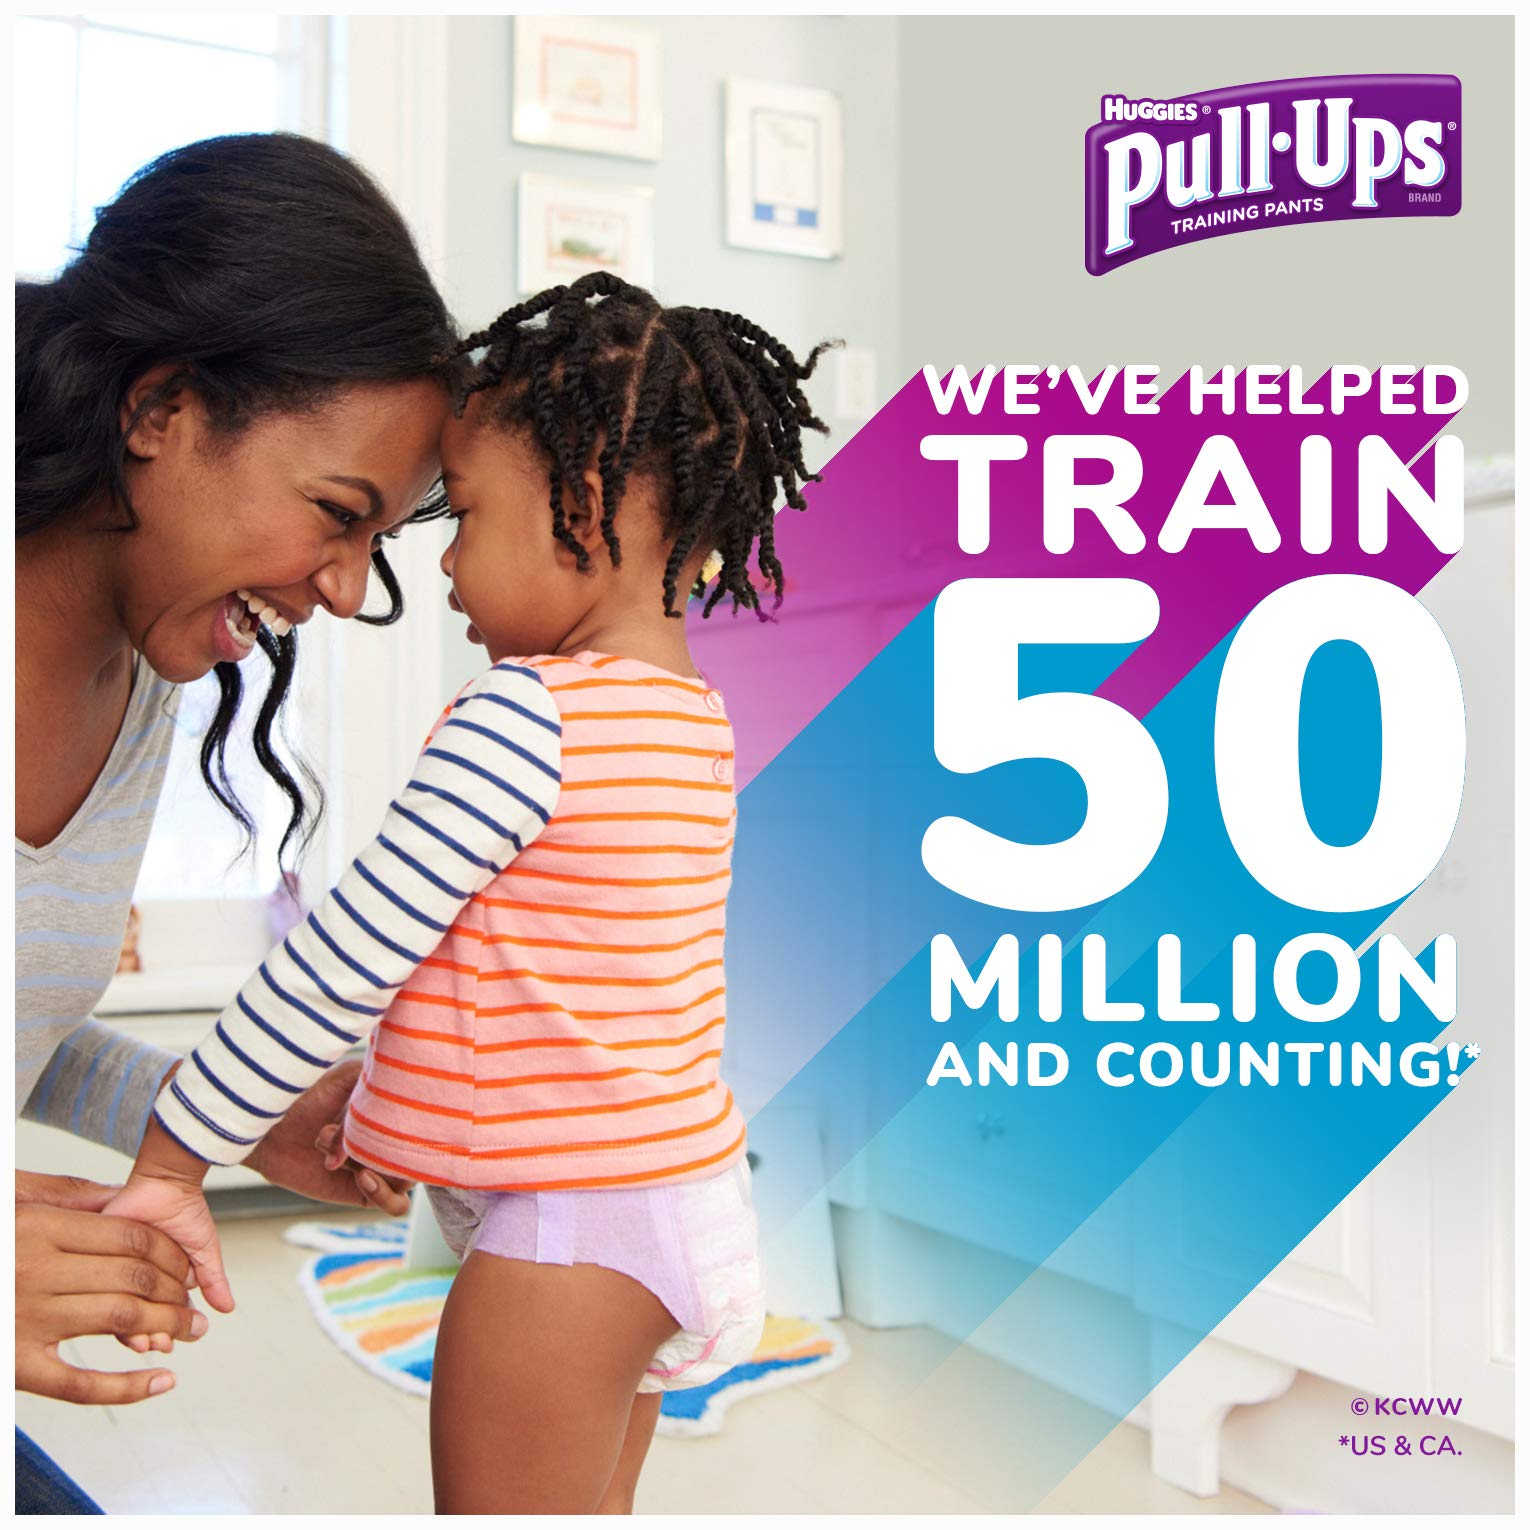 Pull-Ups Night-Time Potty Training Pants for Girls, 2T-3T (18-34 lb.), 23 Ct.- Pack of 4 (Packaging May Vary) by Pull-Ups (Image #4)